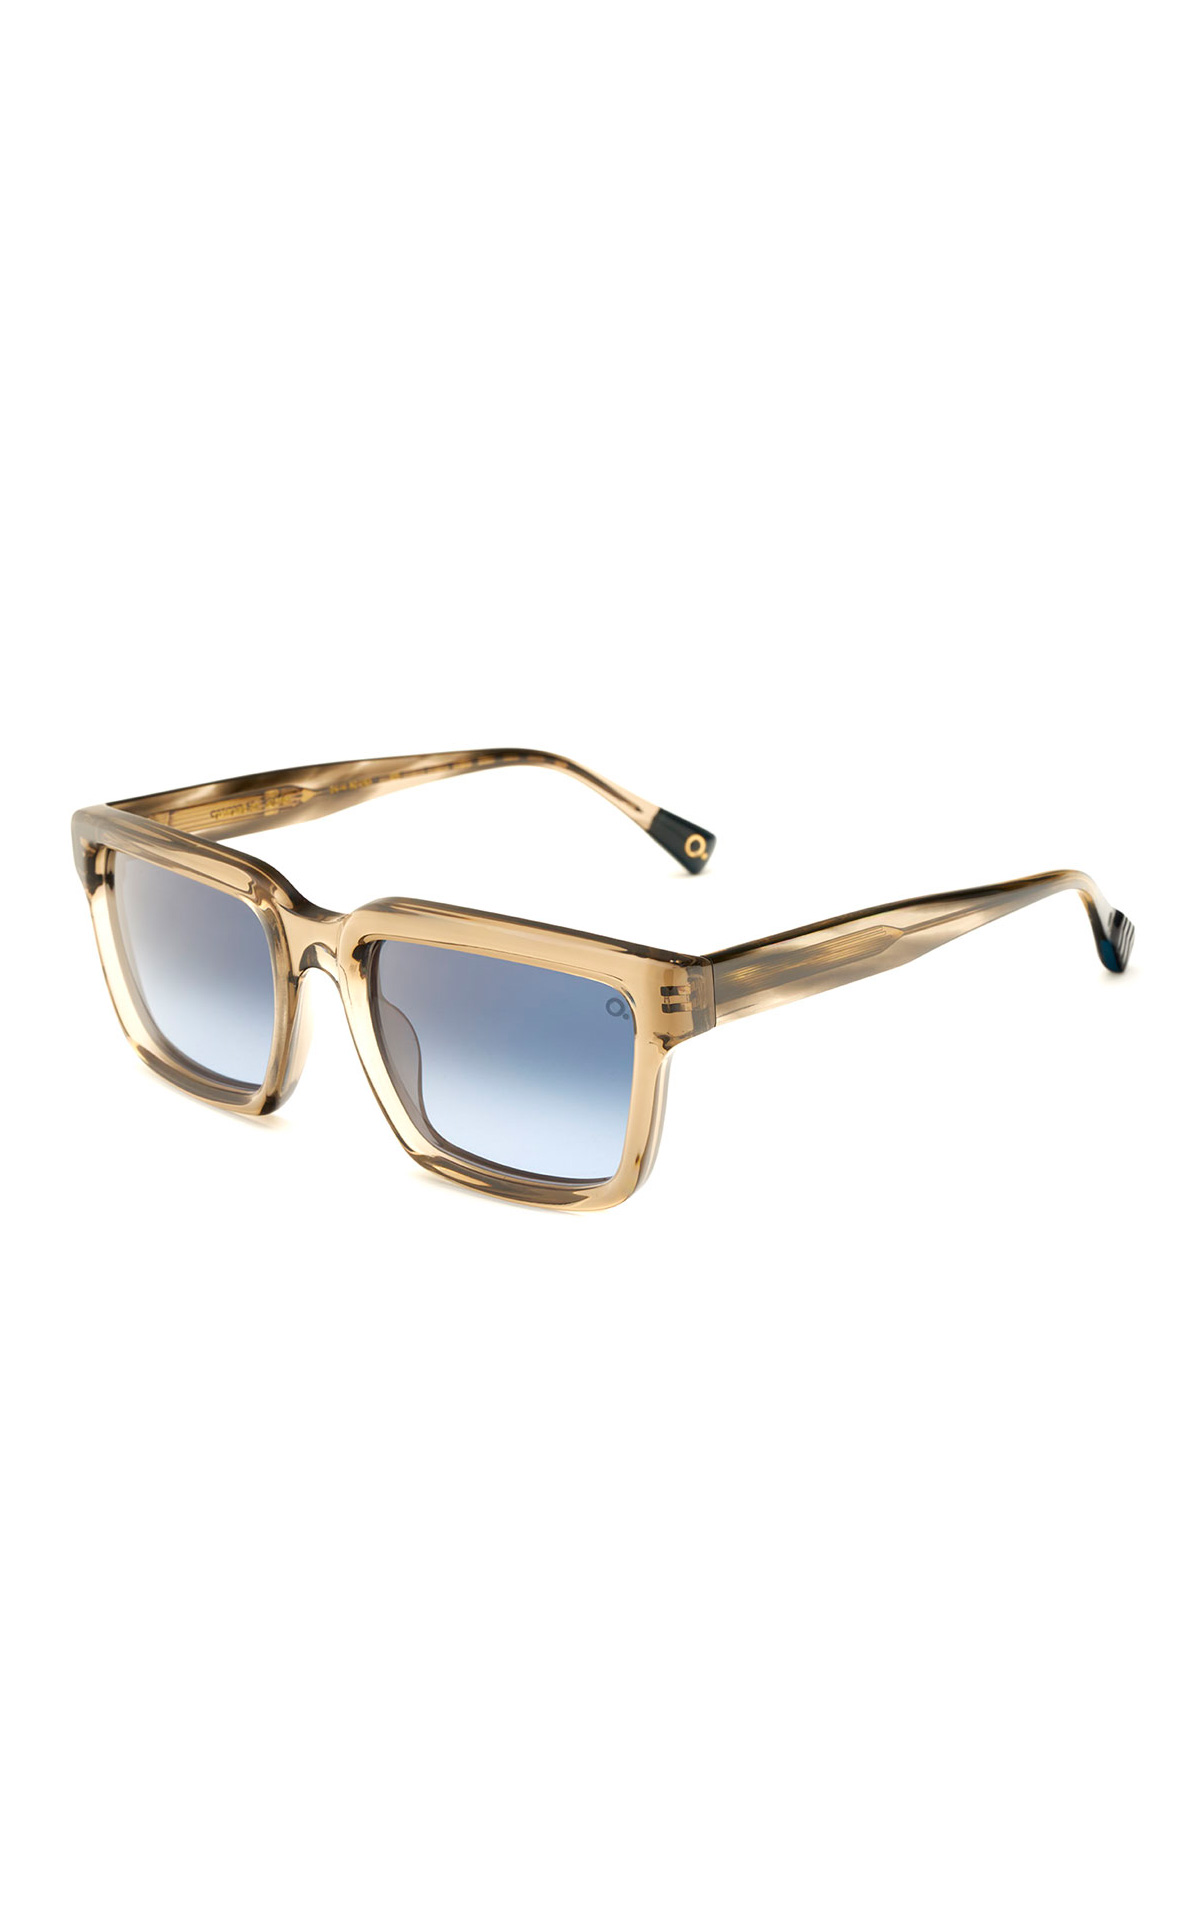 Oxford Street Sunglasses Etnia Barcelona